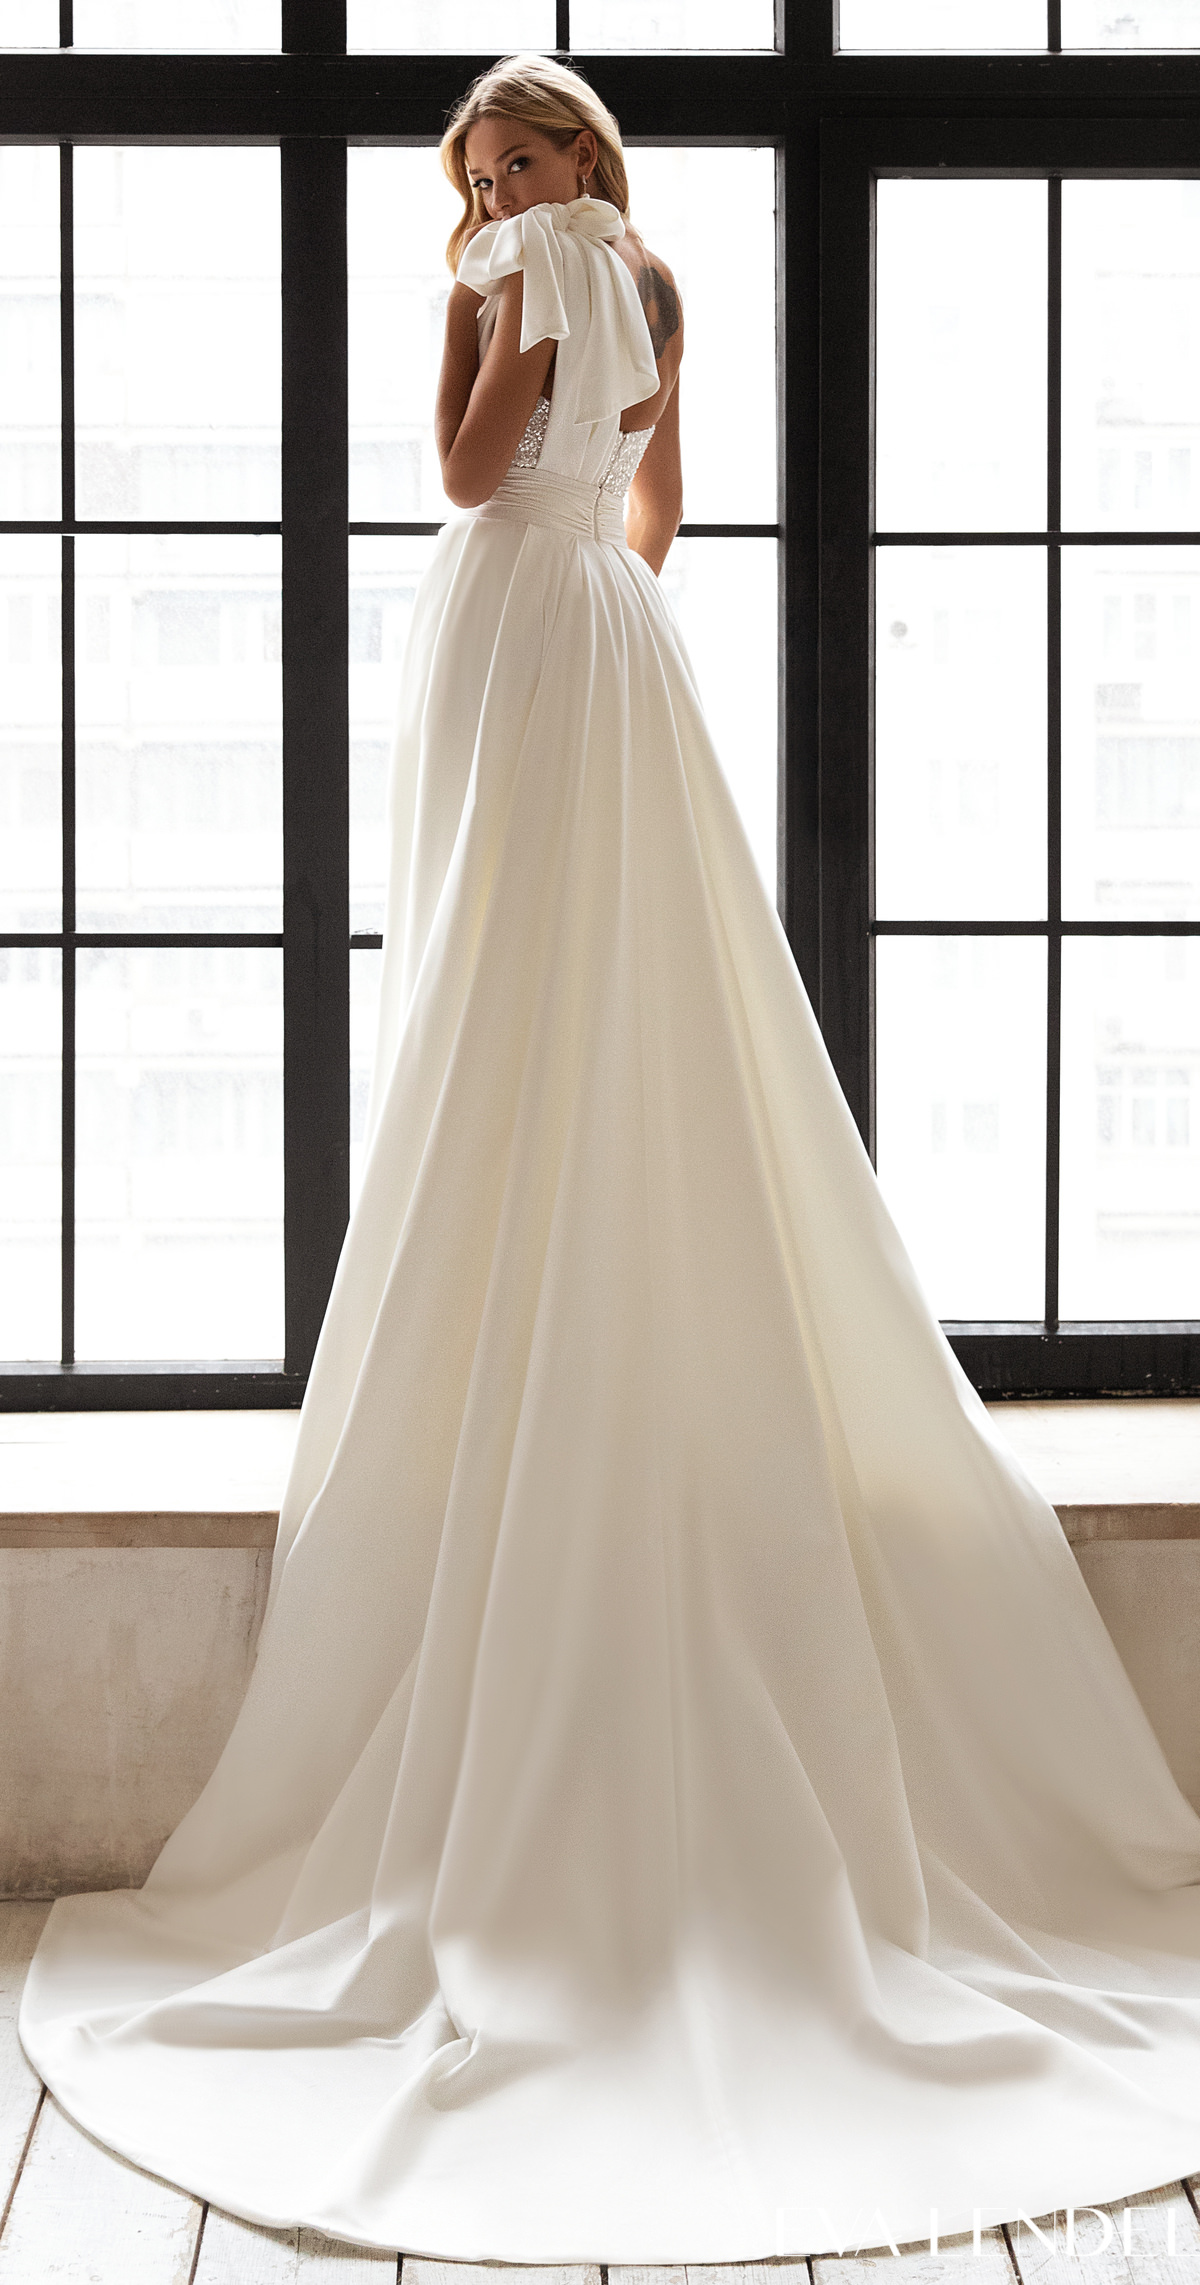 Eva Lendel Wedding Dresses 2021- Less is More Collection -Davina